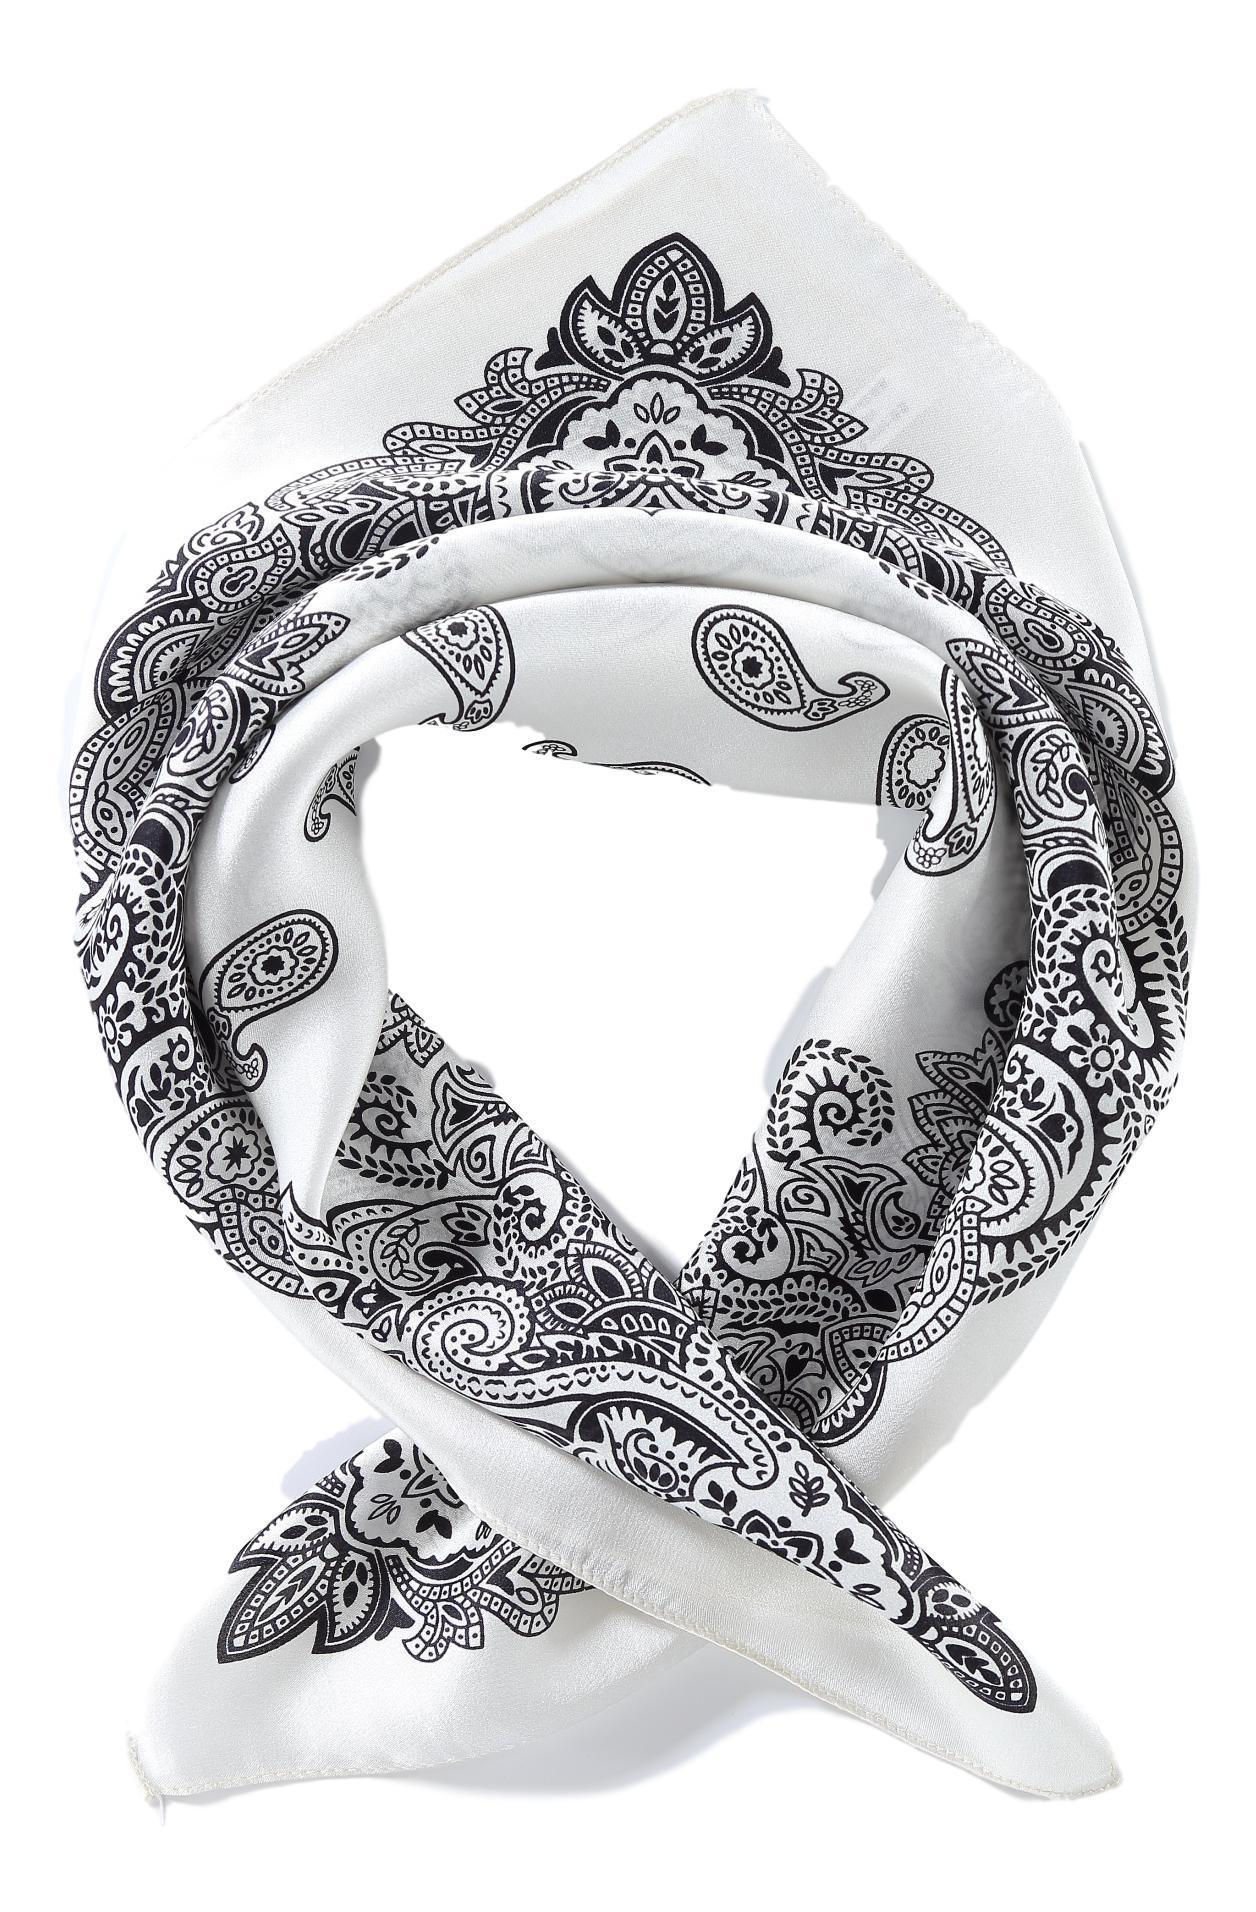 706bec2baf Silk Neckerchief Small Square Silk Scarf White Theme Paisley Print XFJ232